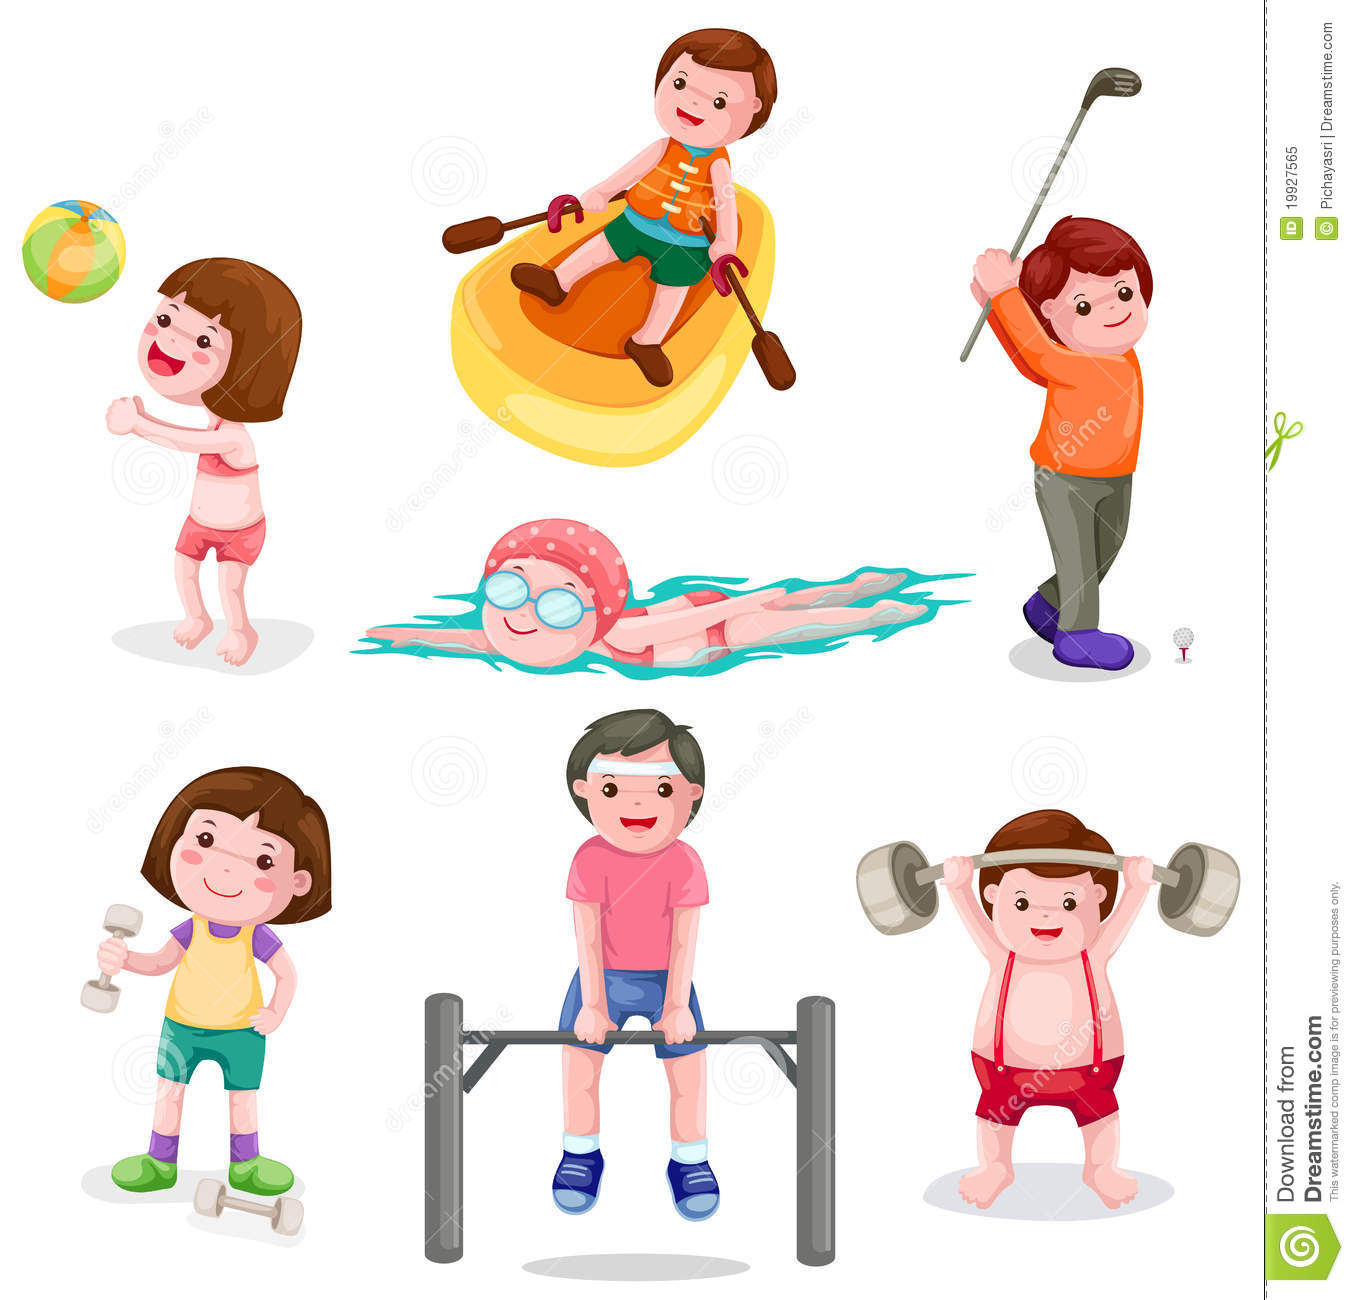 Set of activity exercise stock vector. Image of drawing ...